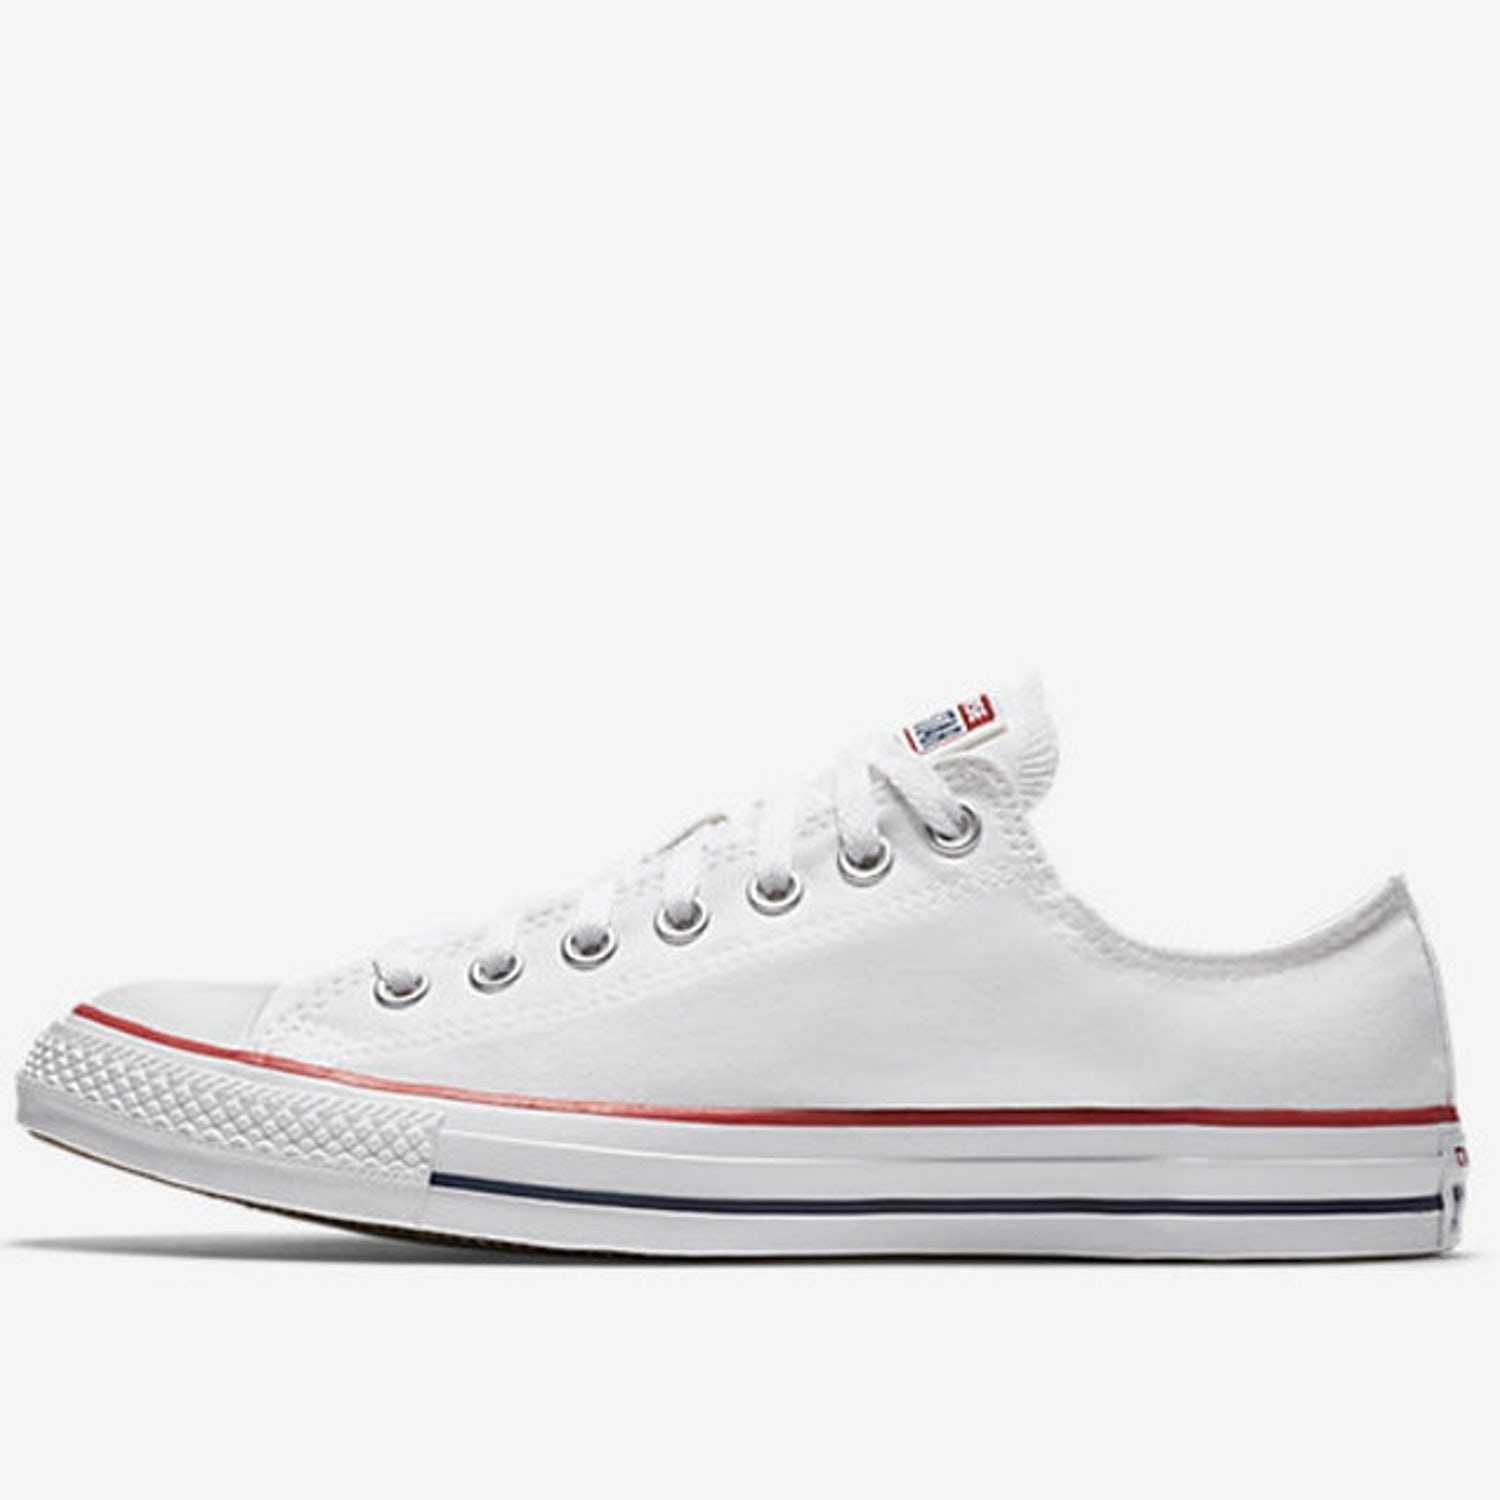 13. Converse Chuck Taylor All Star Low Top  0 0